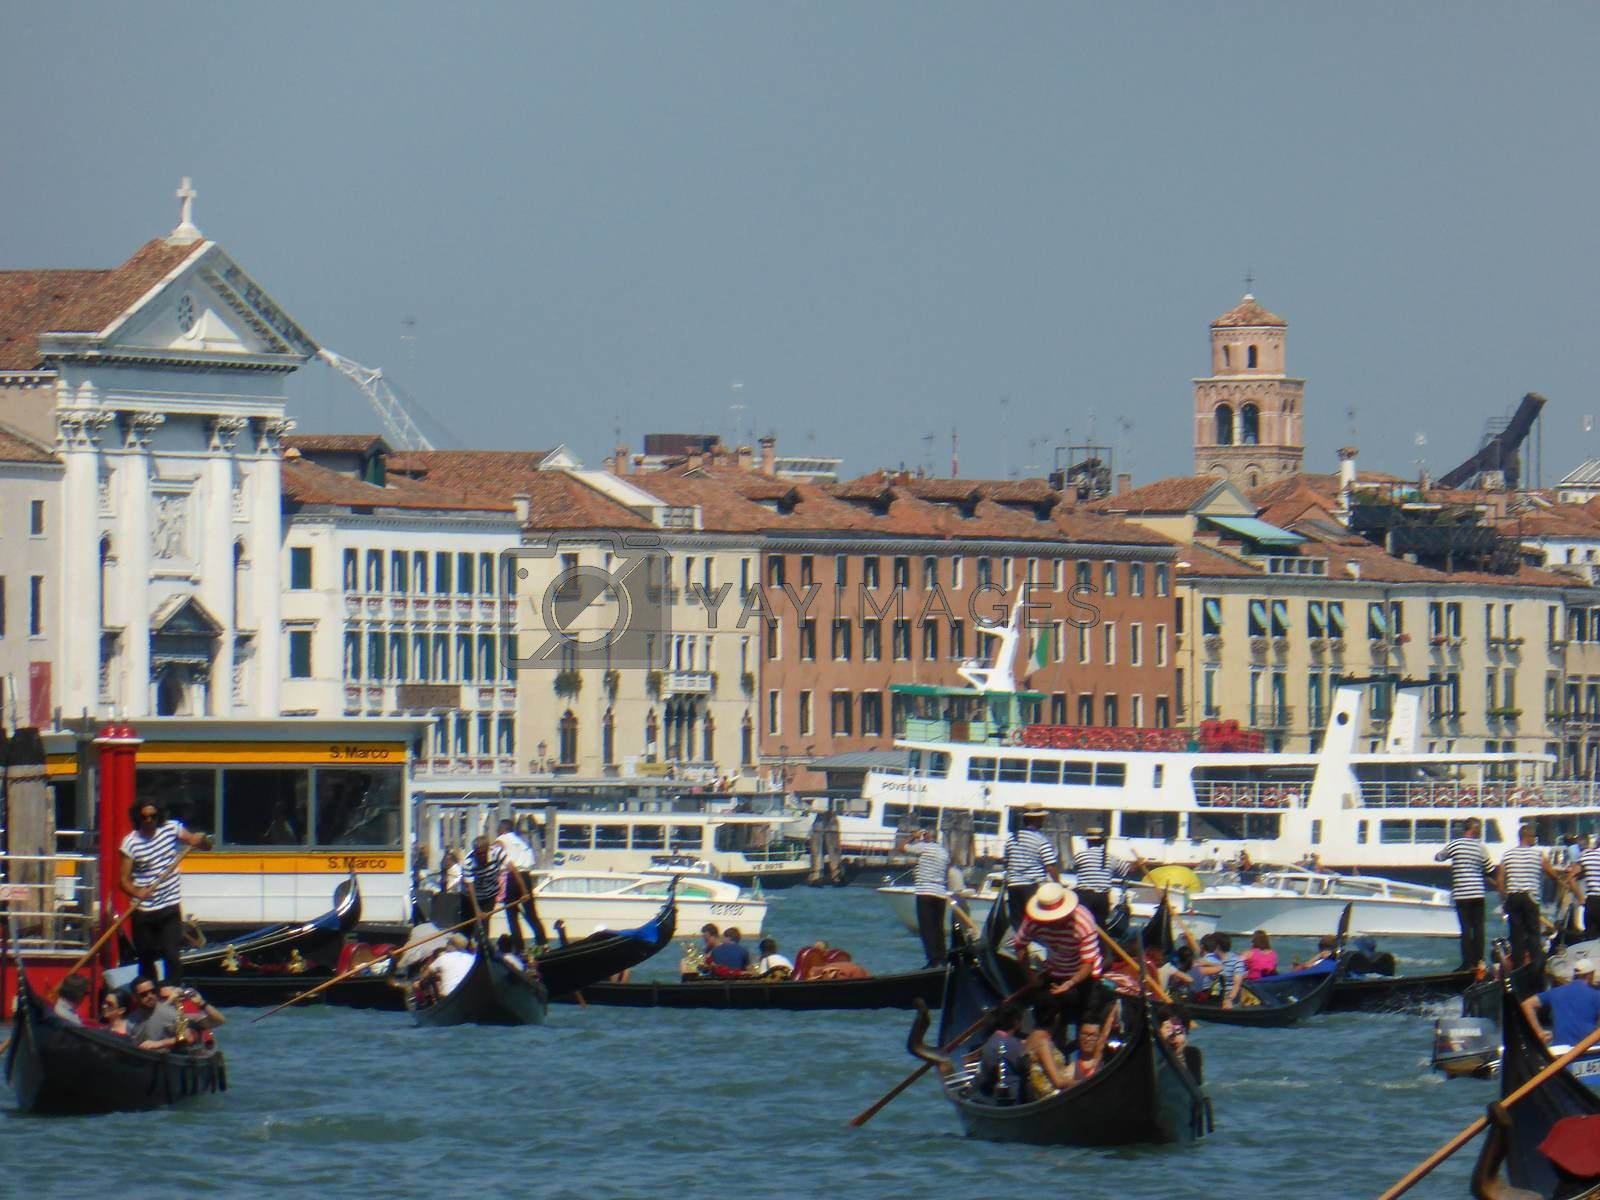 Venice, Italy ��� July, 2013:  the Festival of the Redeemer in Venice on July 20, 2013. The Venetians��� favourite event is a thanksgiving to Jesus Christ for the end of the Plague. In three years 1575-1577 the Black Death killed more than half of the inhabitants of Venice in spite of the efforts of the best doctors and the Venetian Senate approved the proposal of the Doge to make a solemn vow to invoke the salvation of the city. The fireworks show is considered the best in Europe and people can watch having dinner on boats or gondole.